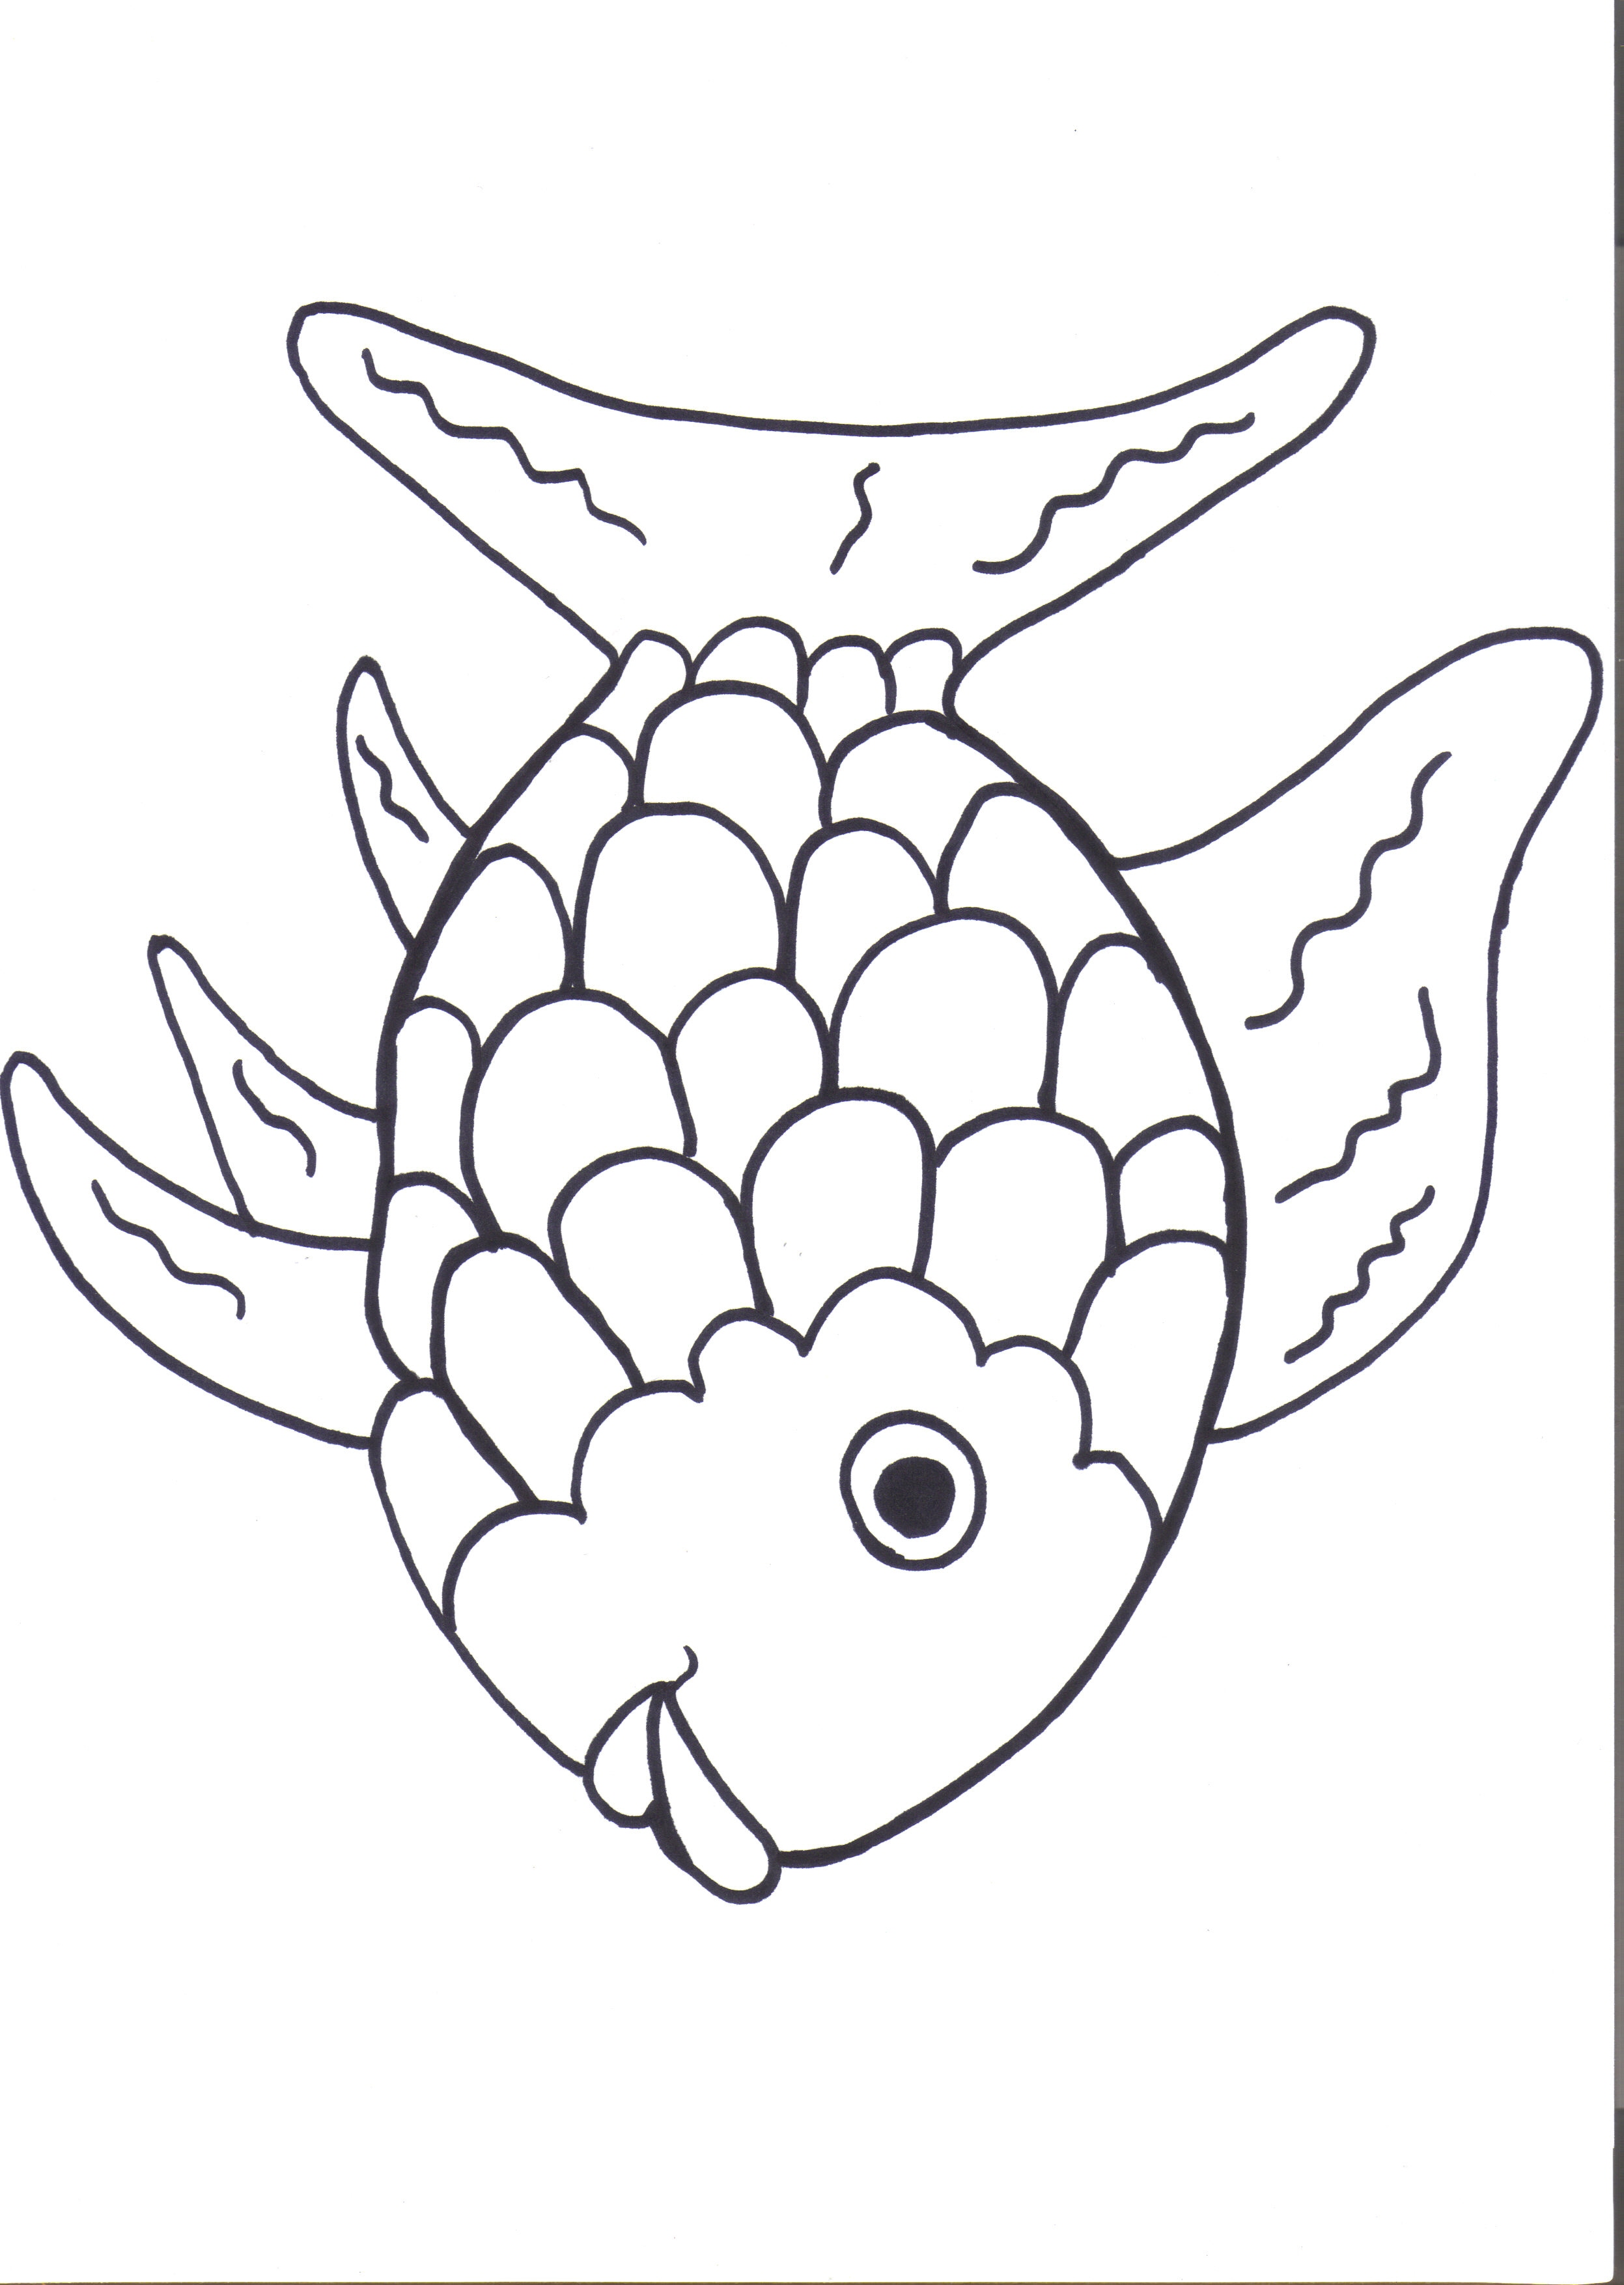 Free Rainbow Fish Outline, Download Free Clip Art, Free Clip.